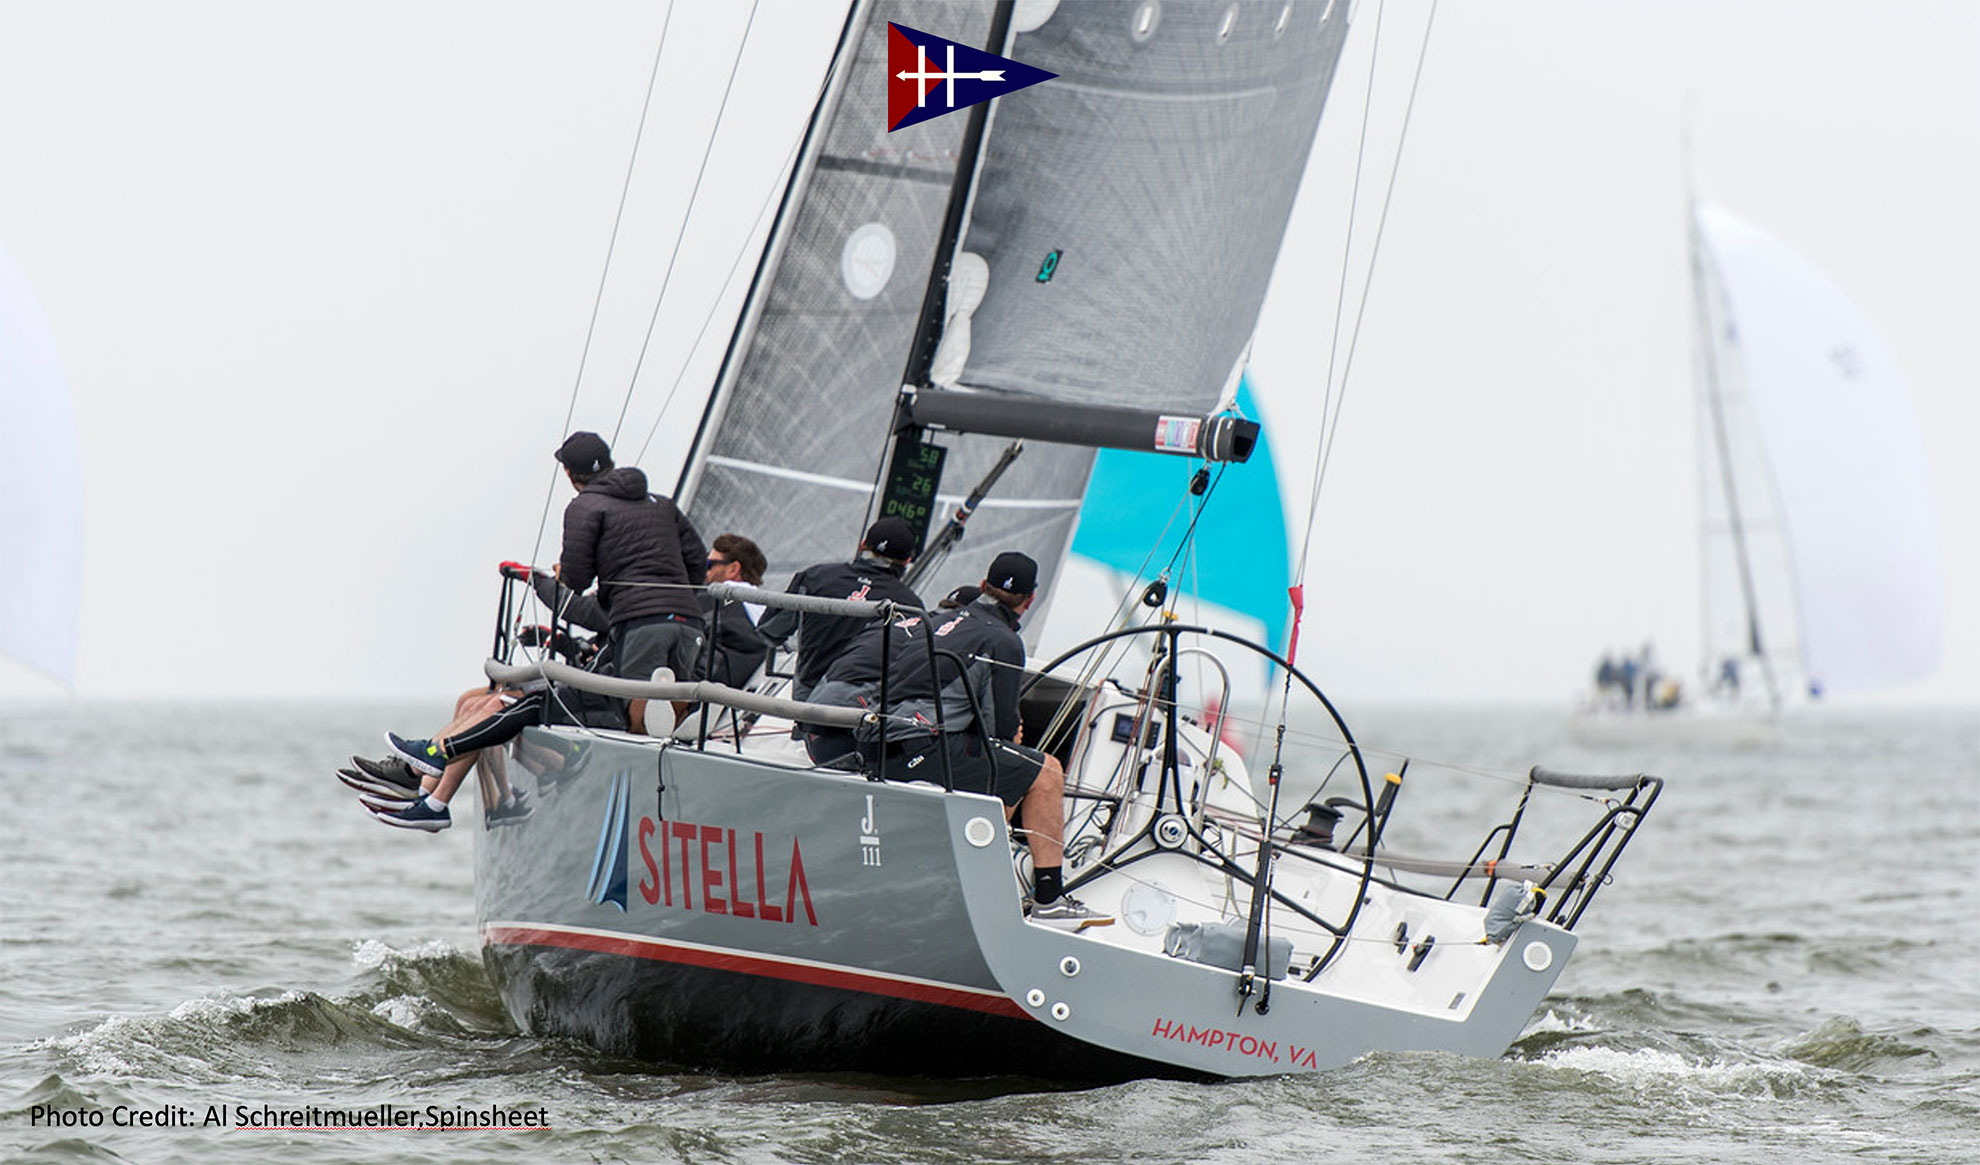 2021 International J/111 Class World Championship